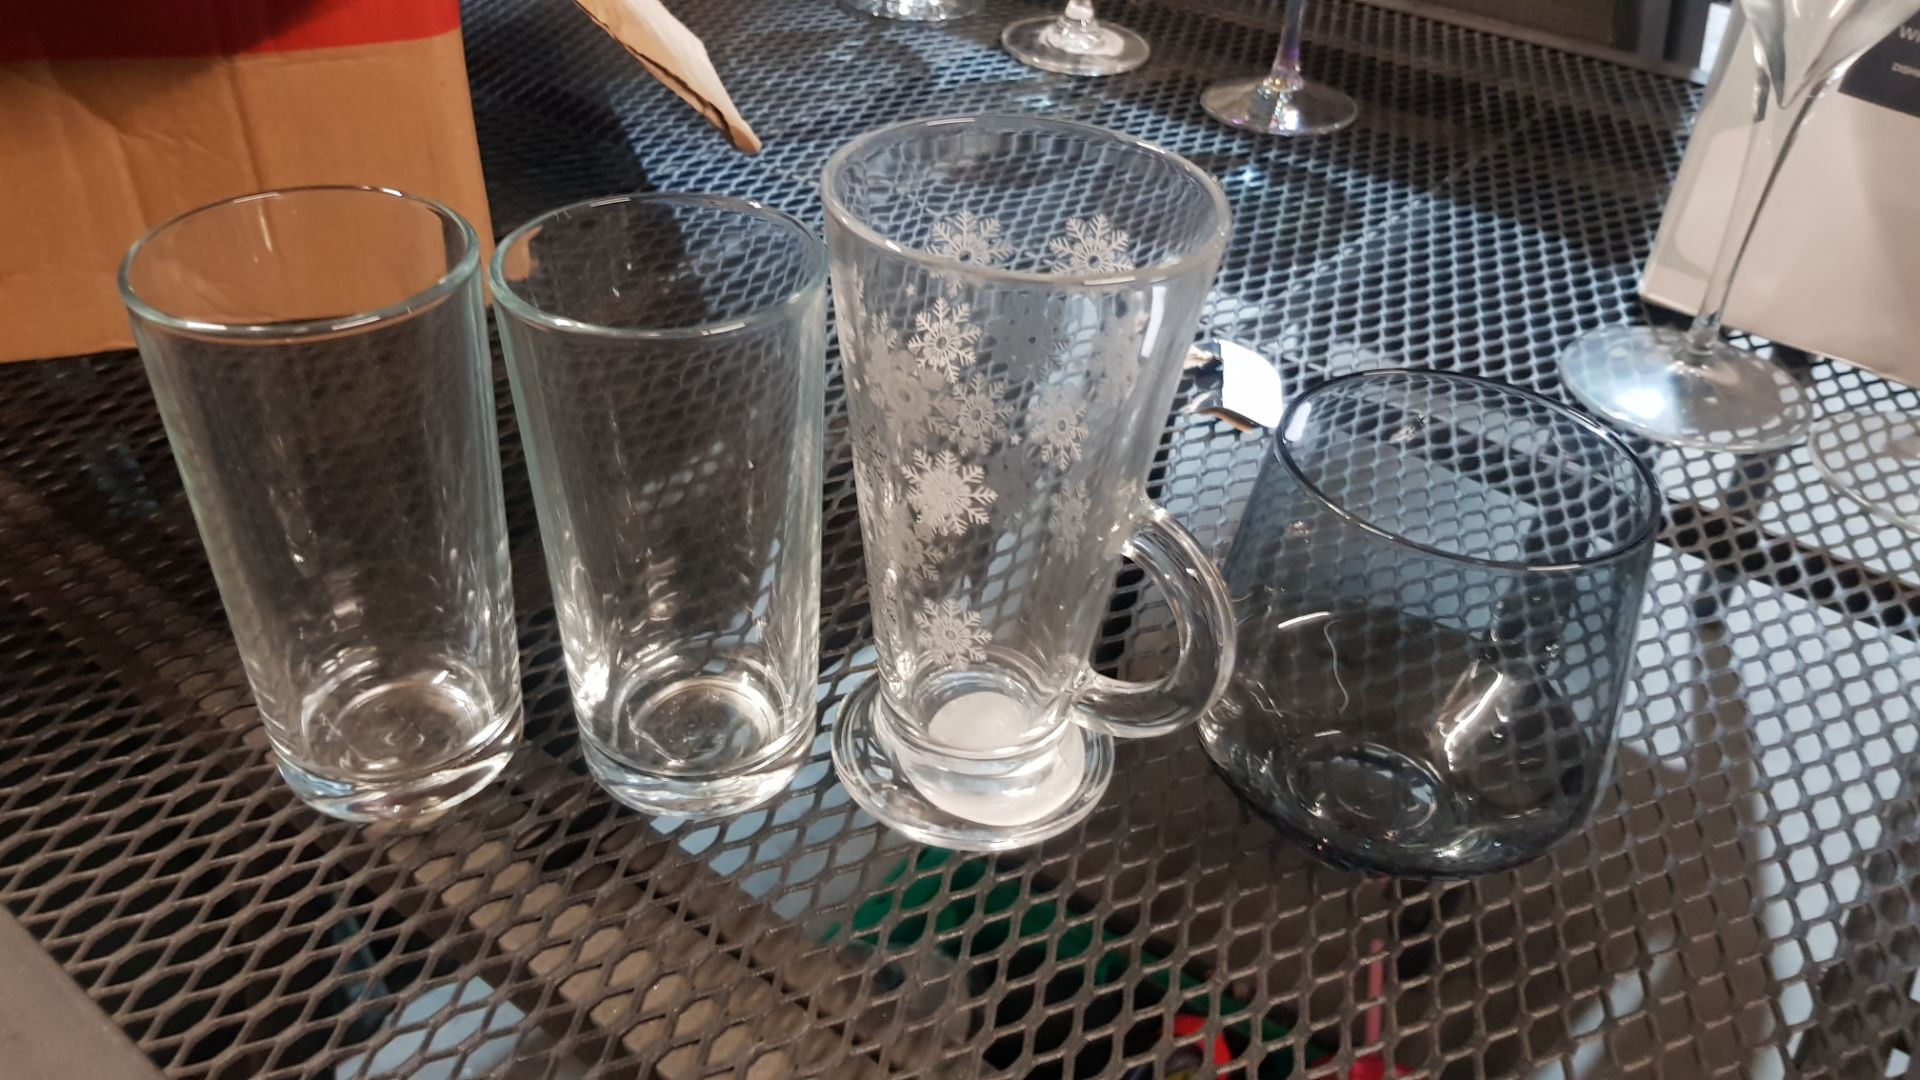 Glass Lot – Approx. 65x Items. To Include 16x Wine Glasses. 3x Large Gin Glasses. 12x Soda Glasses. - Image 17 of 21